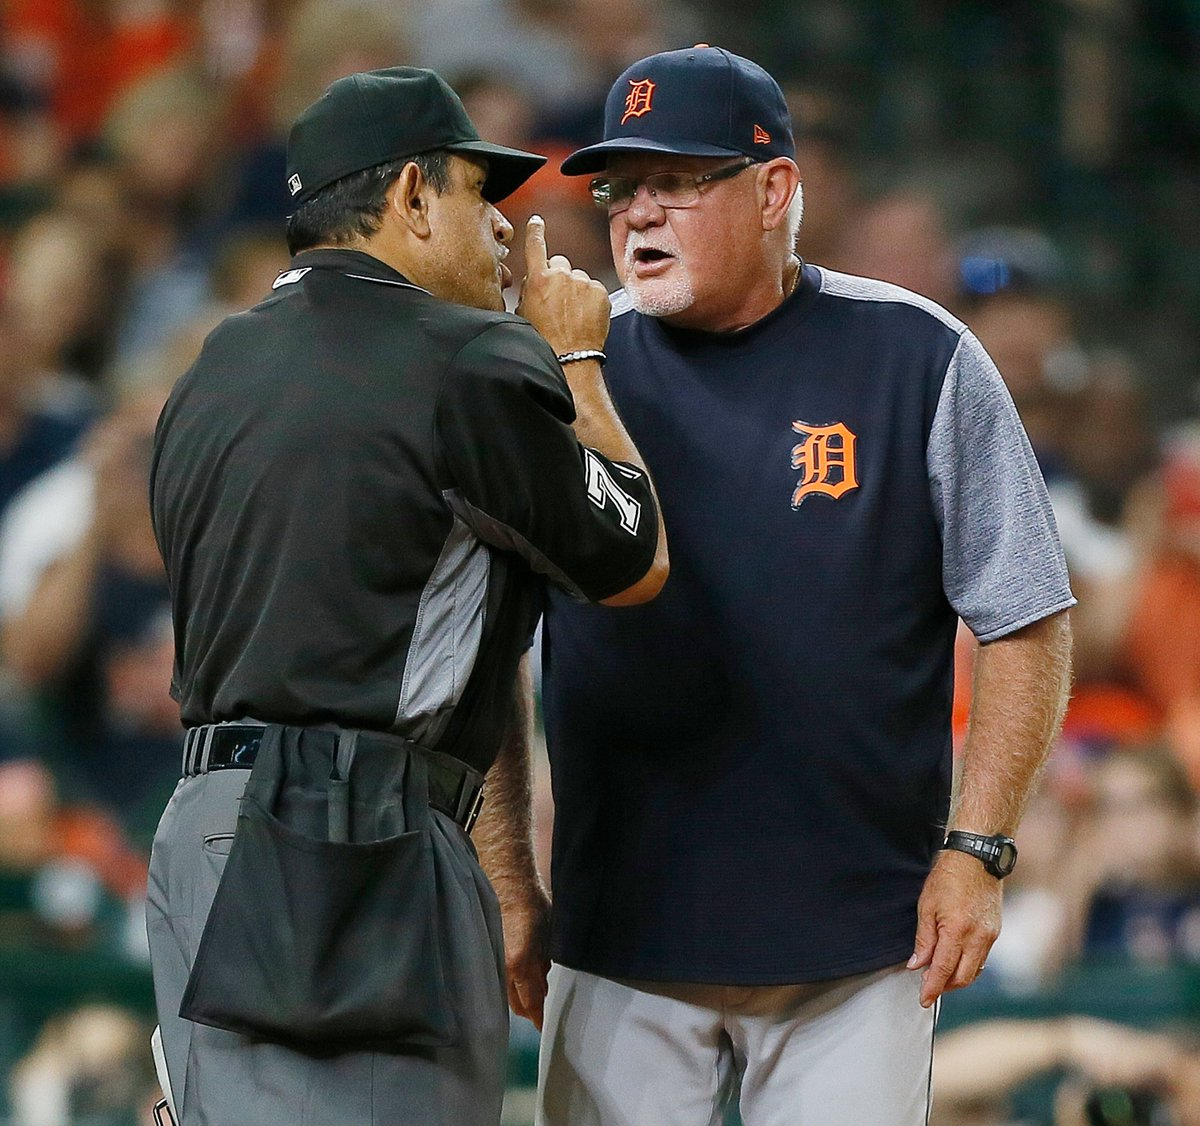 Baseball's over for the night.Before we go, enjoy this photo of Ron Gardenhire & Alfonso Marquez  arguing about who makes the best chicken sandwich (hint: it's Popeye's)Night, y'all.